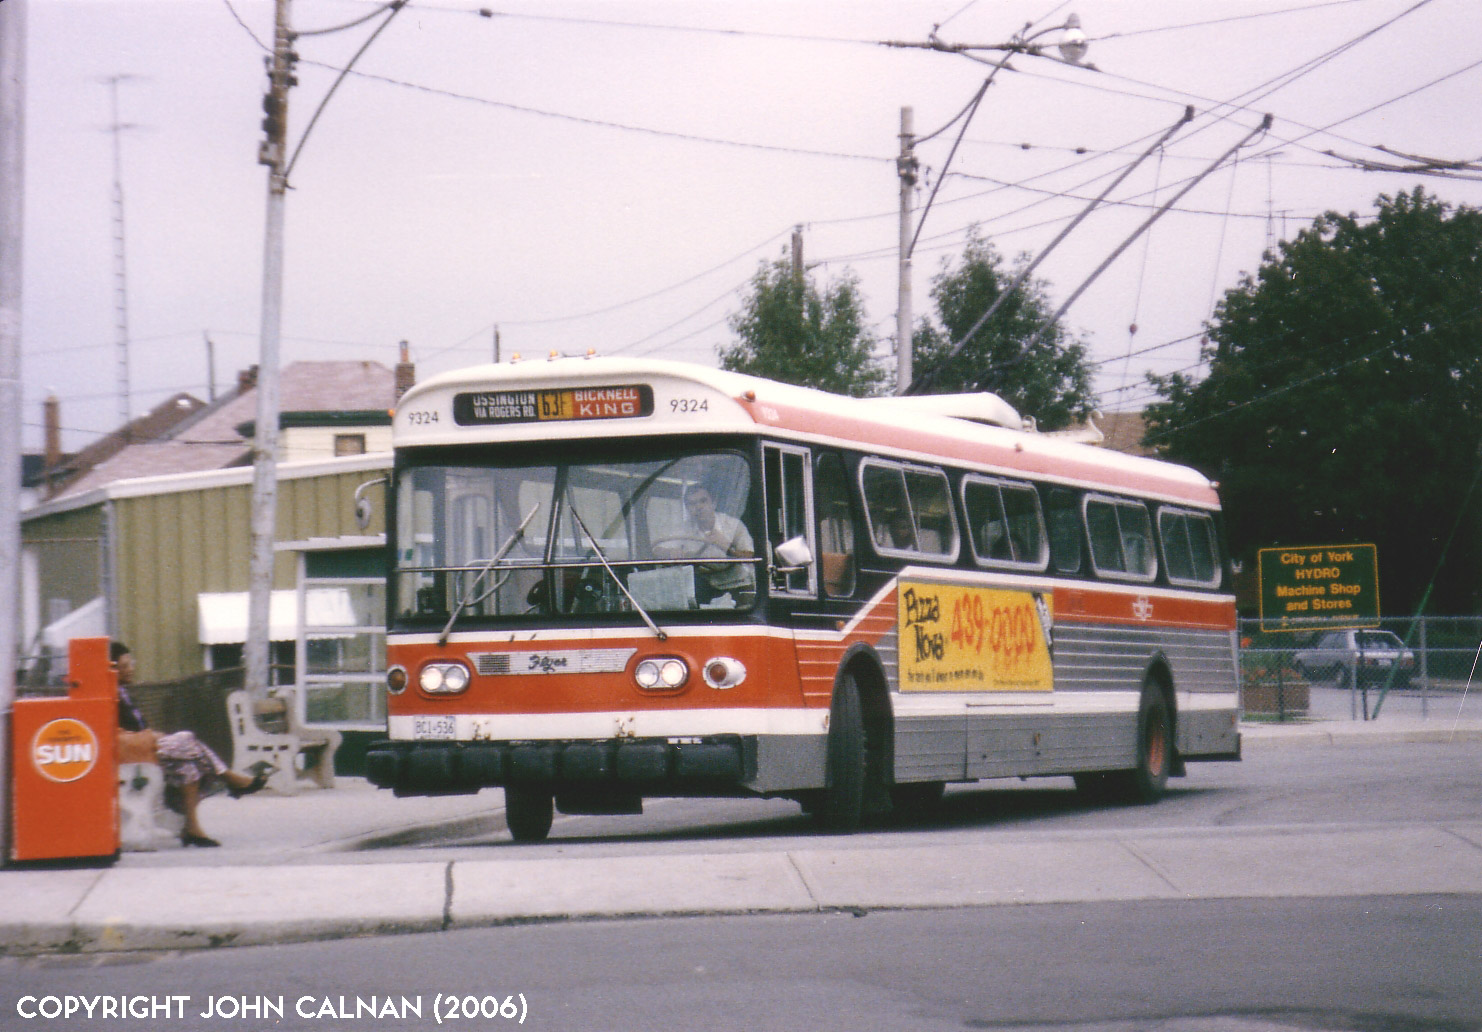 Trolleybus - 09 photo